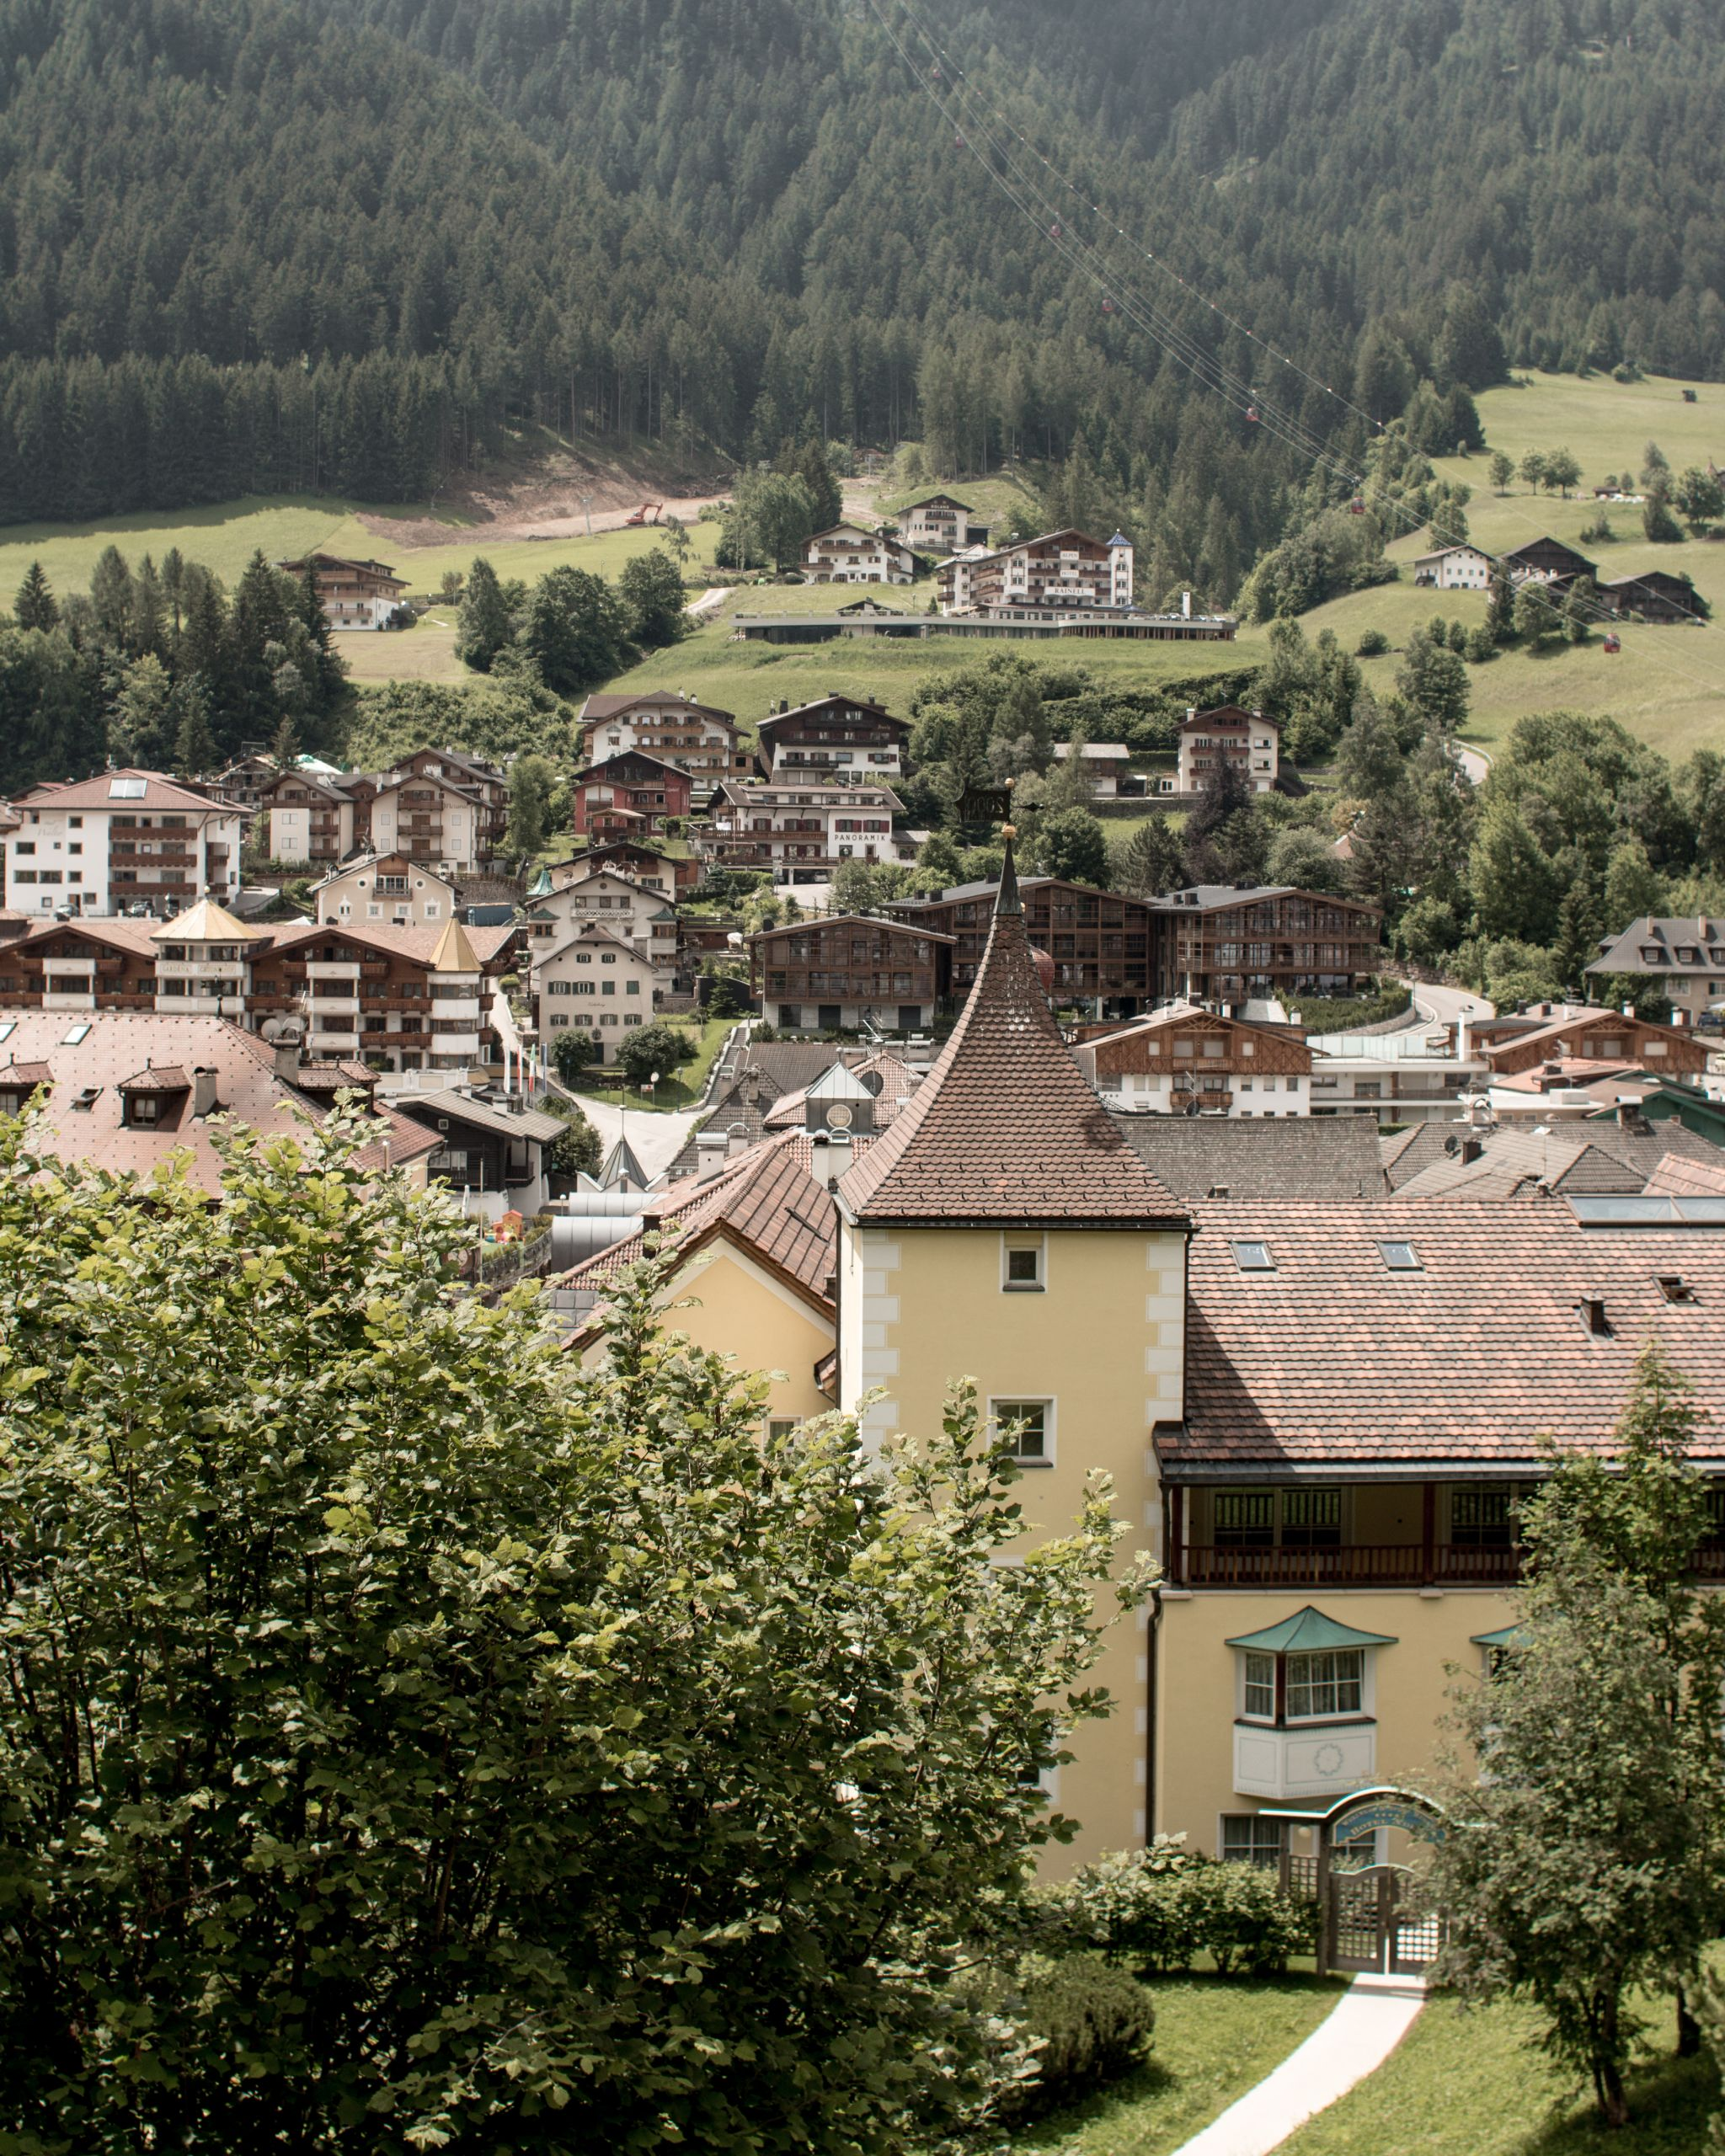 Adler Dolomites Hotel Ortisei Italy Hotel Hospitality Brand Photography Valley View